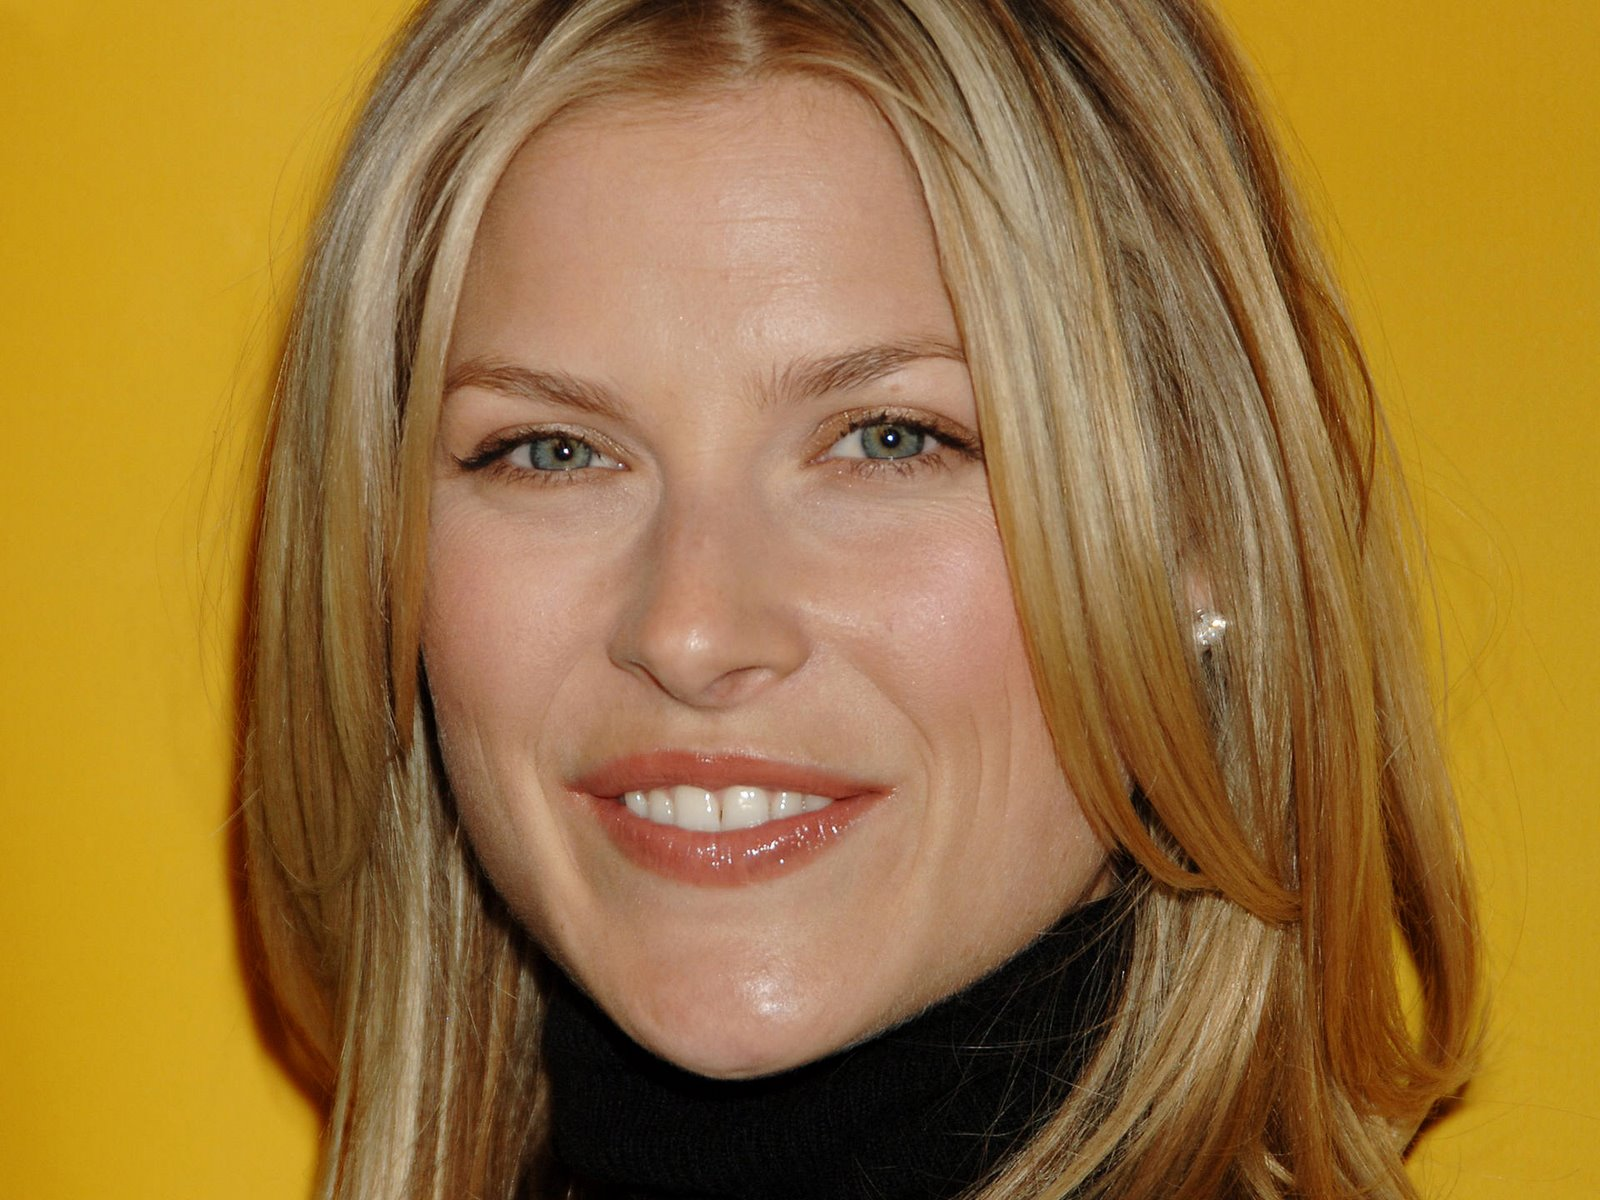 70+ Hot Pictures Of Ali Larter Will Take You To The Final